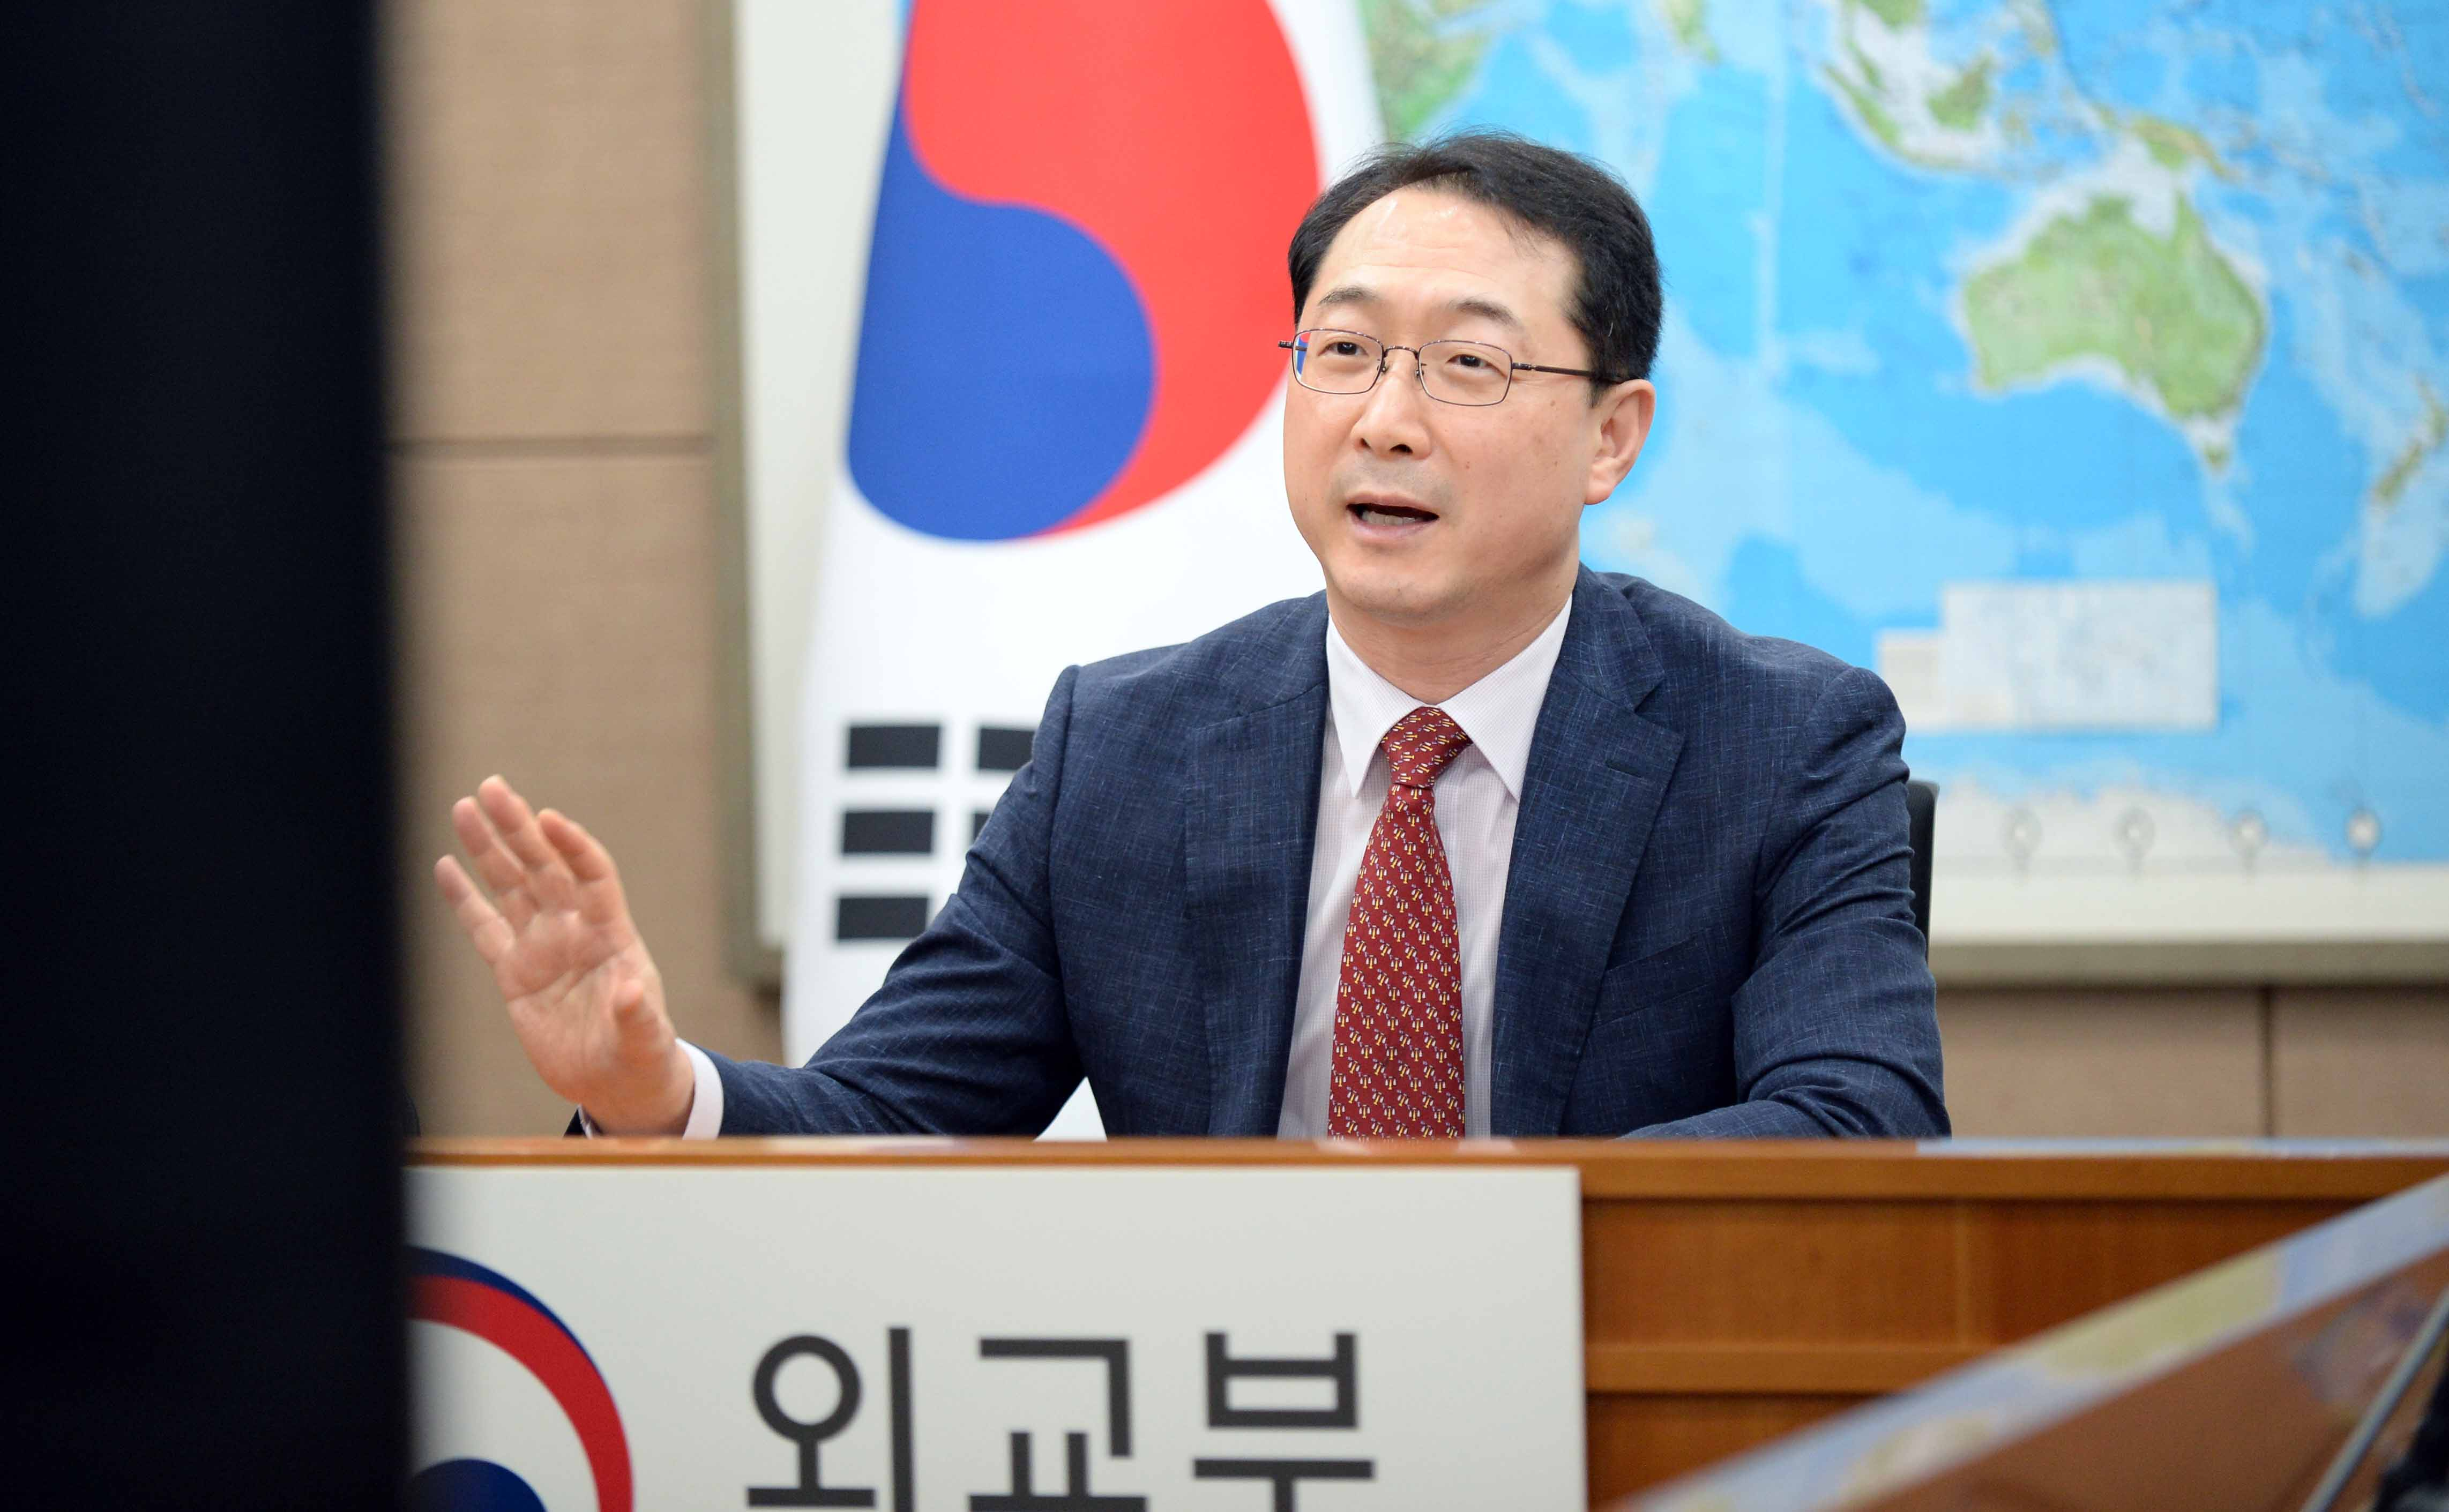 ROK-New Zealand Deputy Foreign Ministerial Video Conference Takes Place